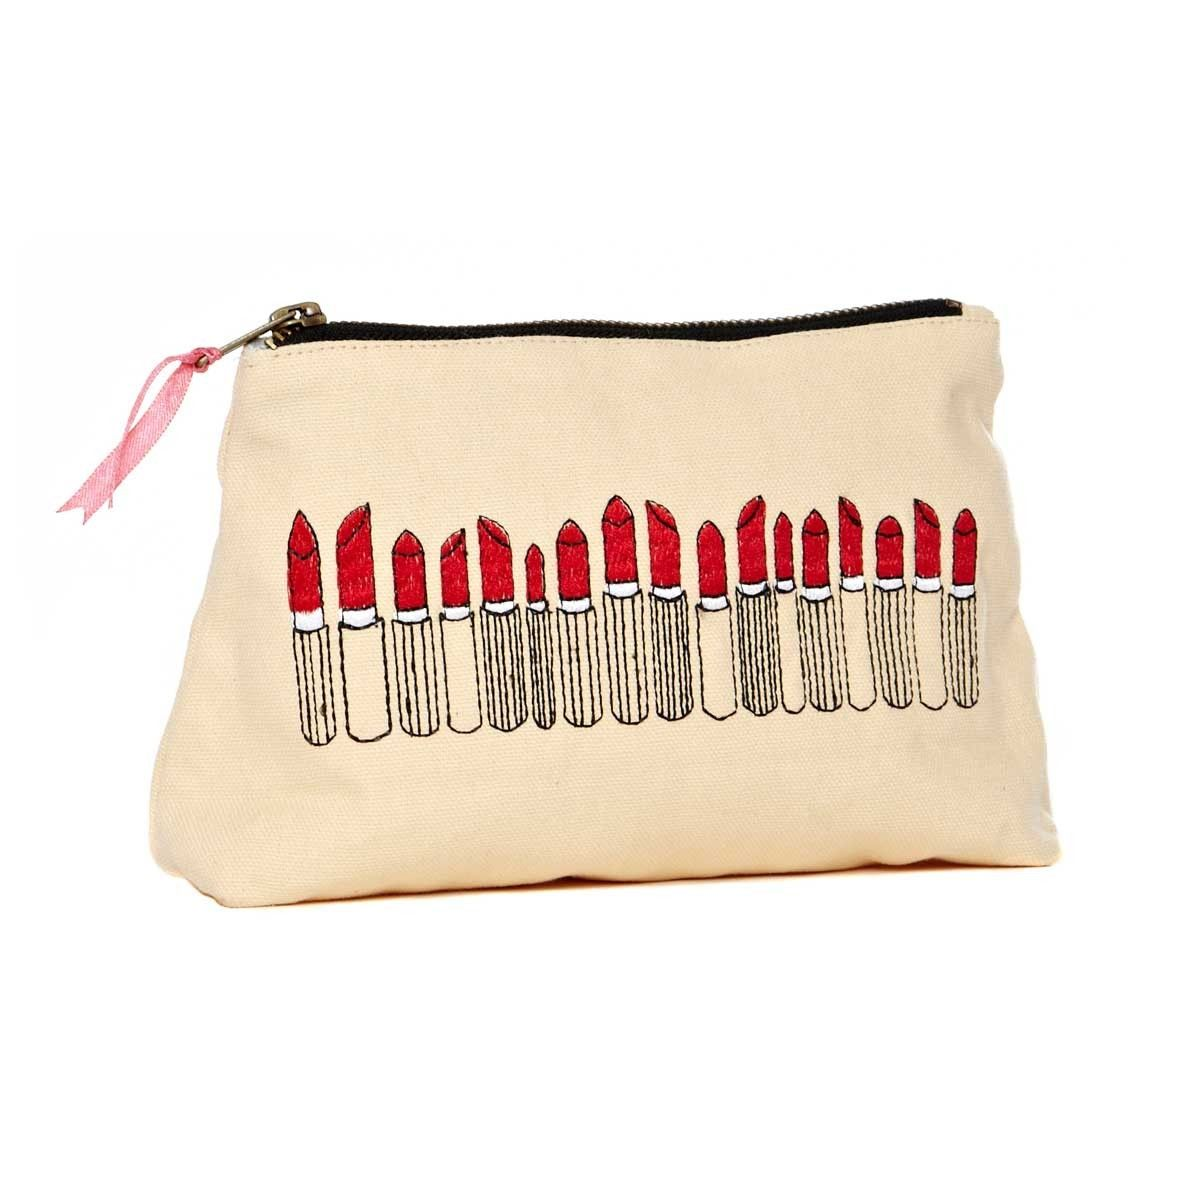 Sewlomax lipstick pouch in white | Nerd Attire & Accessories | Pinterest